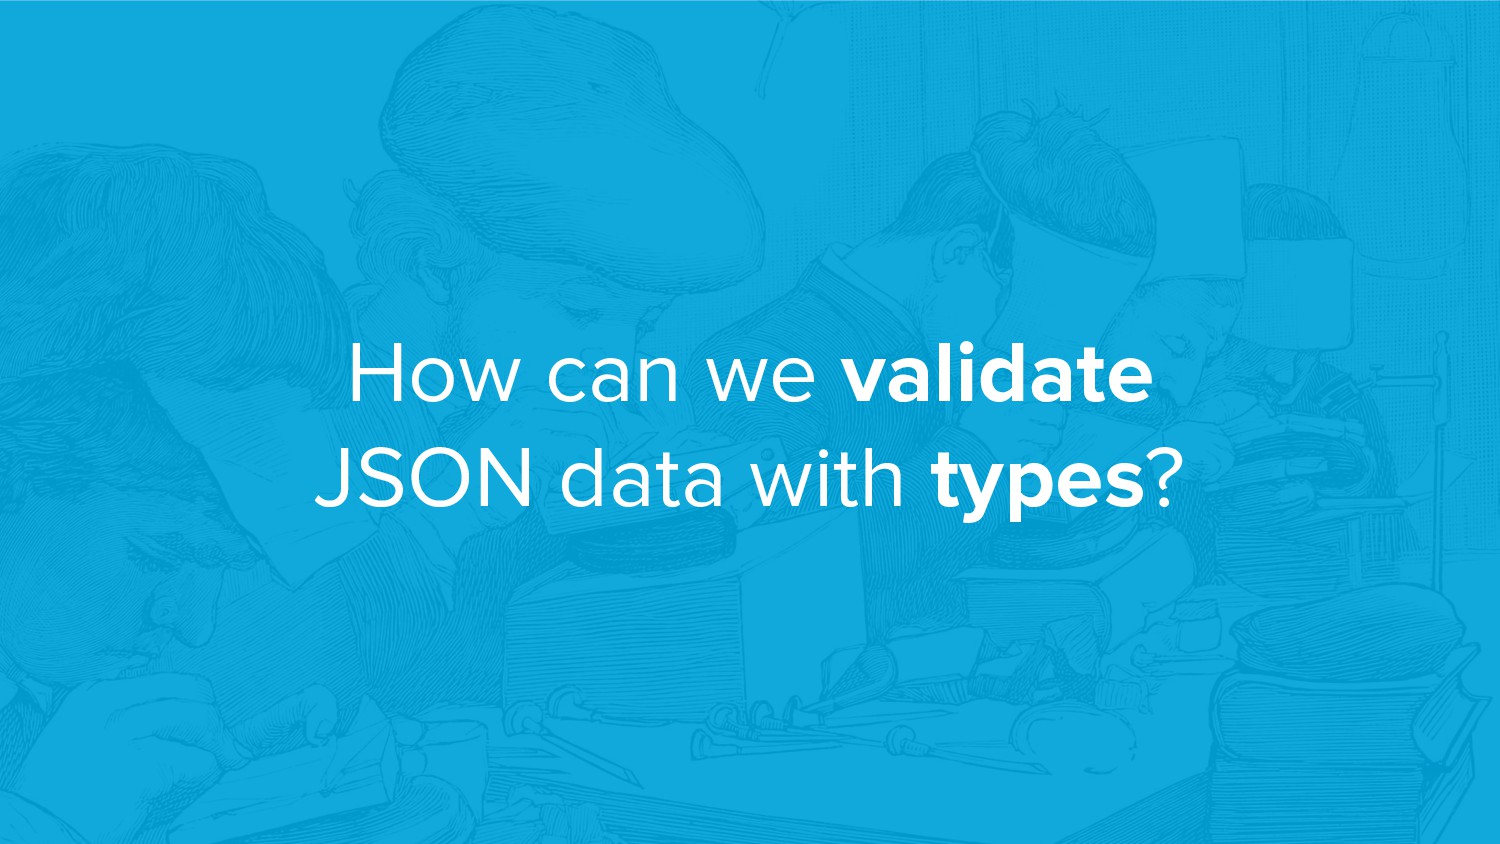 How can we validate JSON data with types?